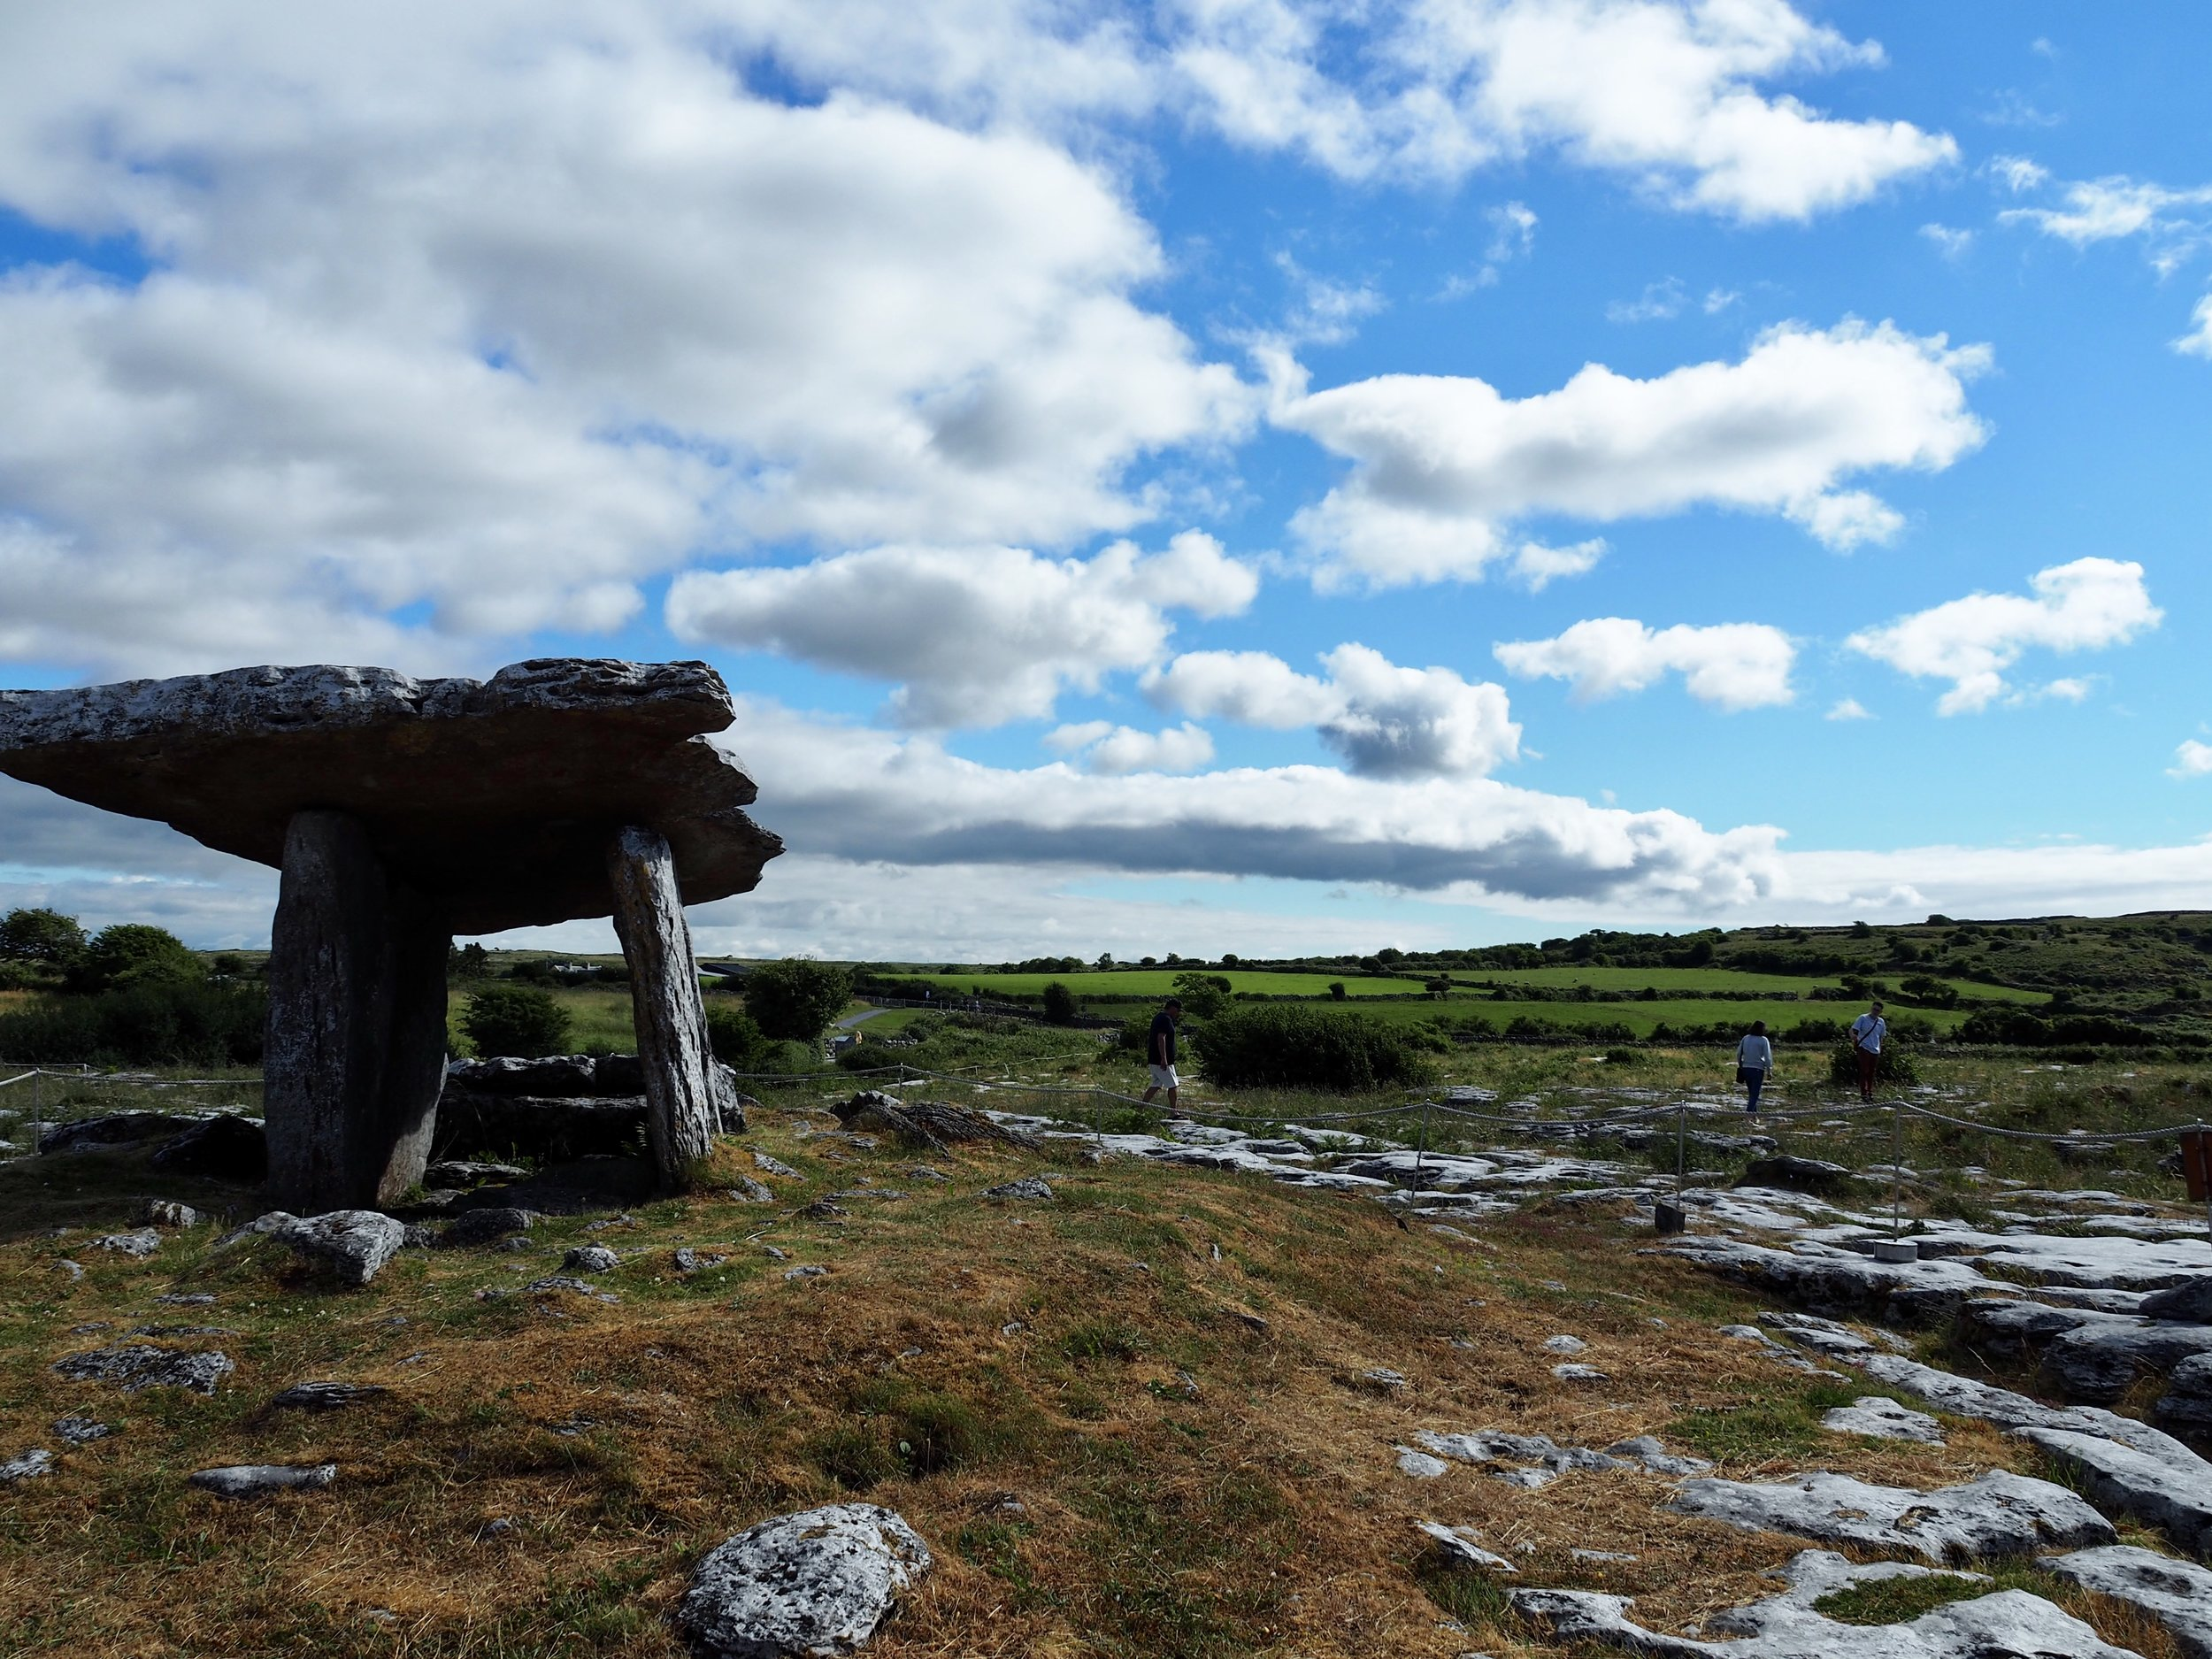 There are a handful of places on this planet that emanate an otherworldly, almost spiritual feeling about them. The Burren is one of those rare spots.